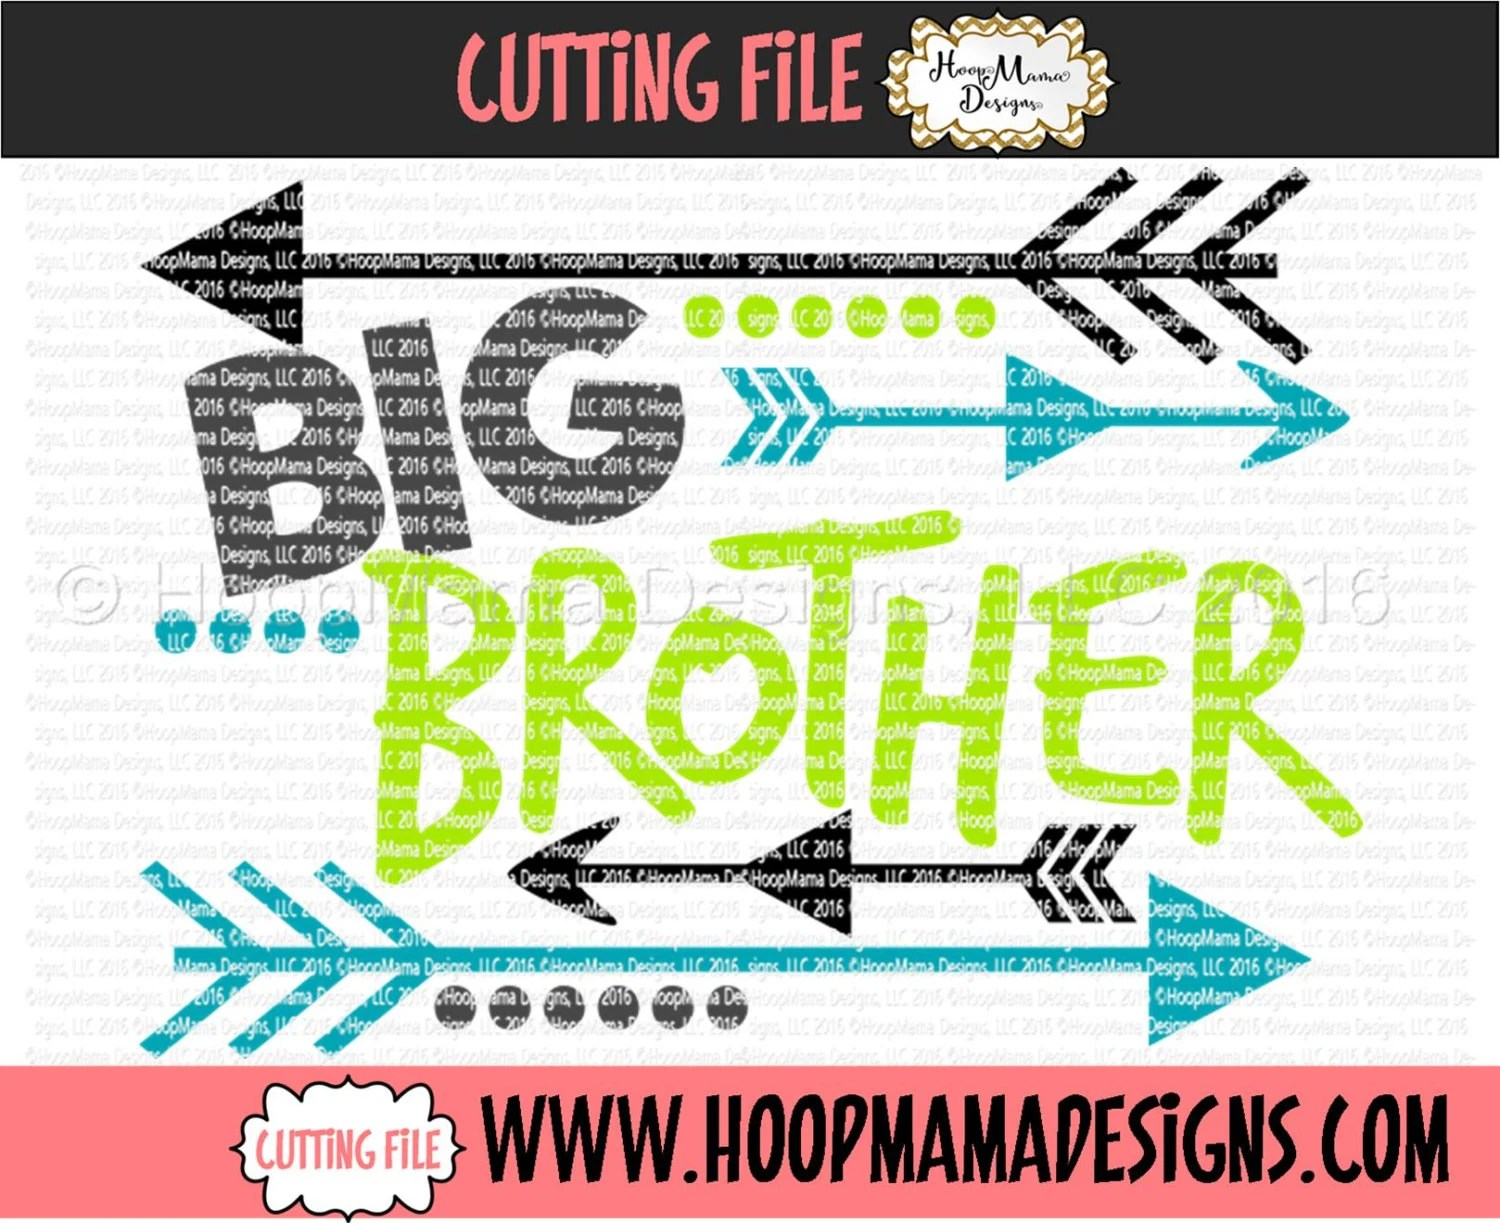 Big Brother With Arrows Svg Dxf Eps And Files For Cutting